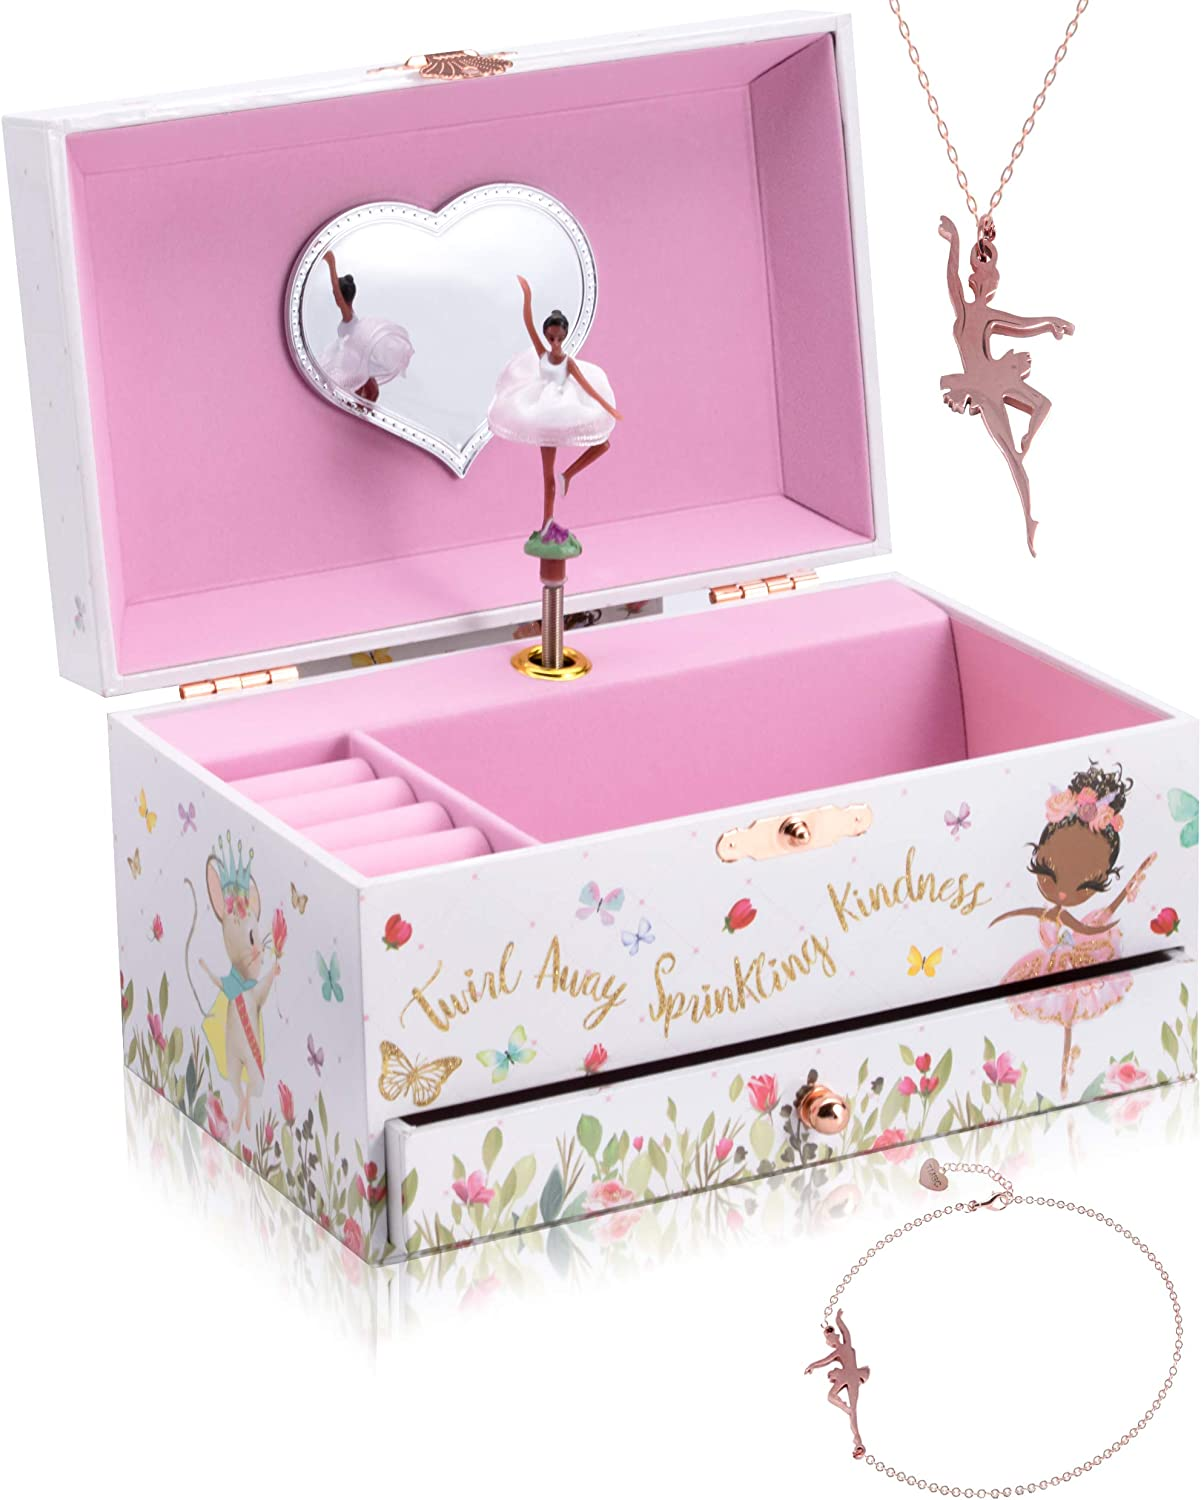 The Memory Building Company Musical Ballerina Jewelry Box for Girls & Little Girls Jewelry Set - 3 Dancer Gifts for Girls… (Black)